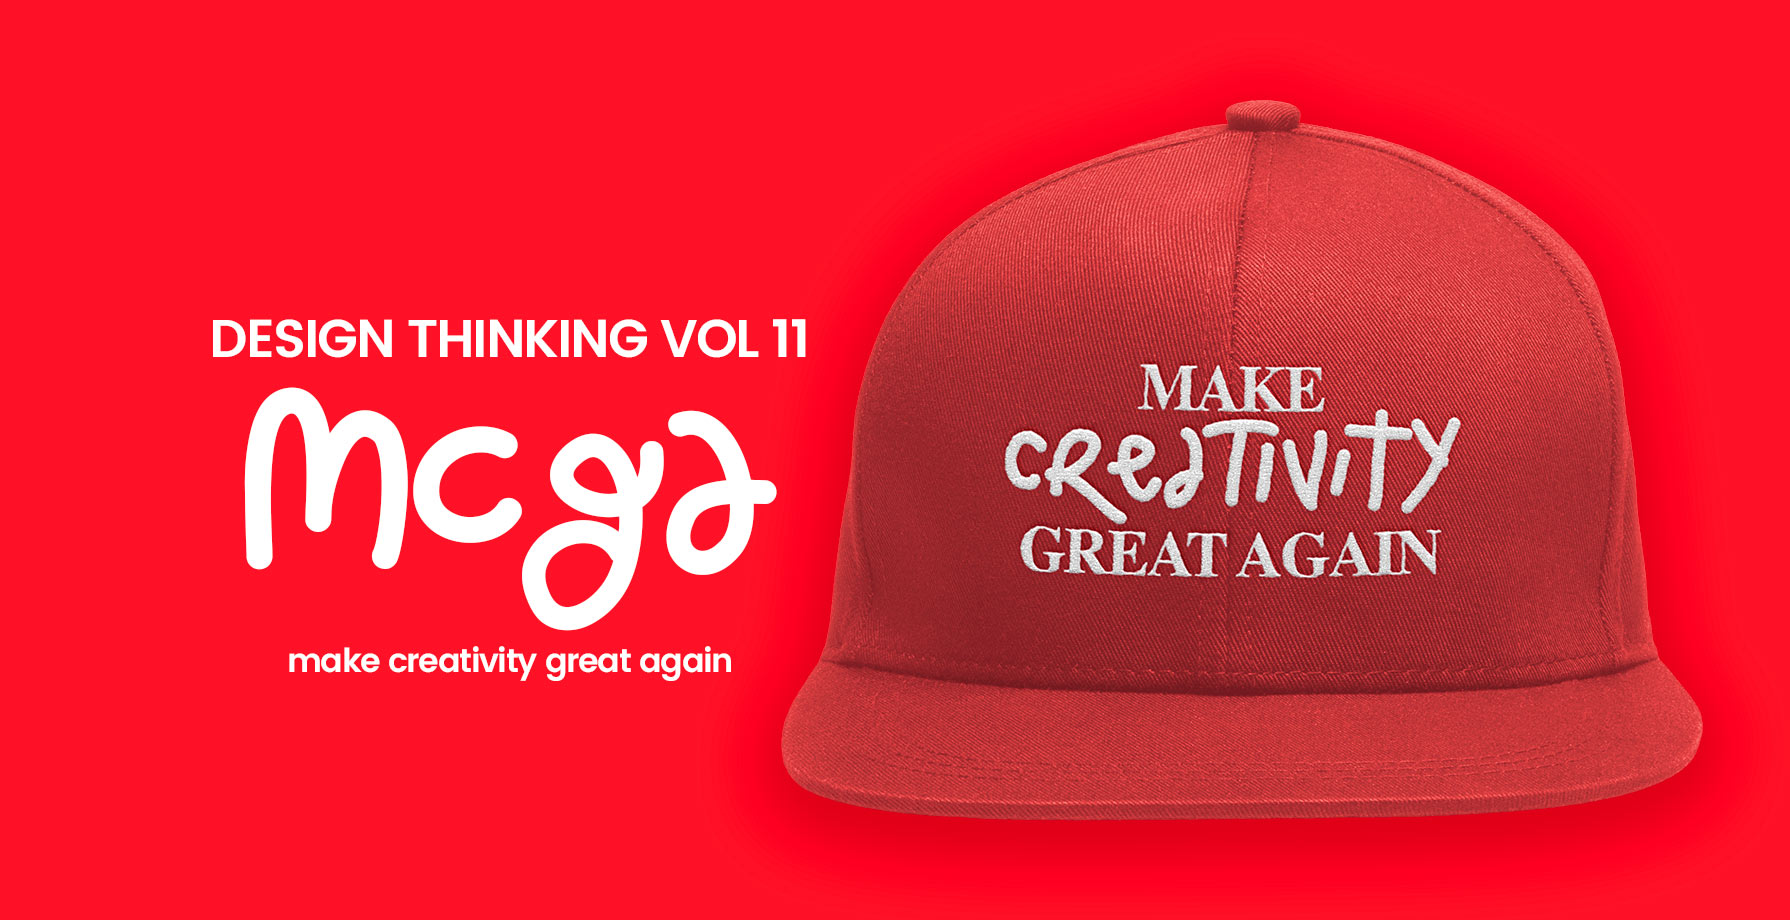 make creativity great again!